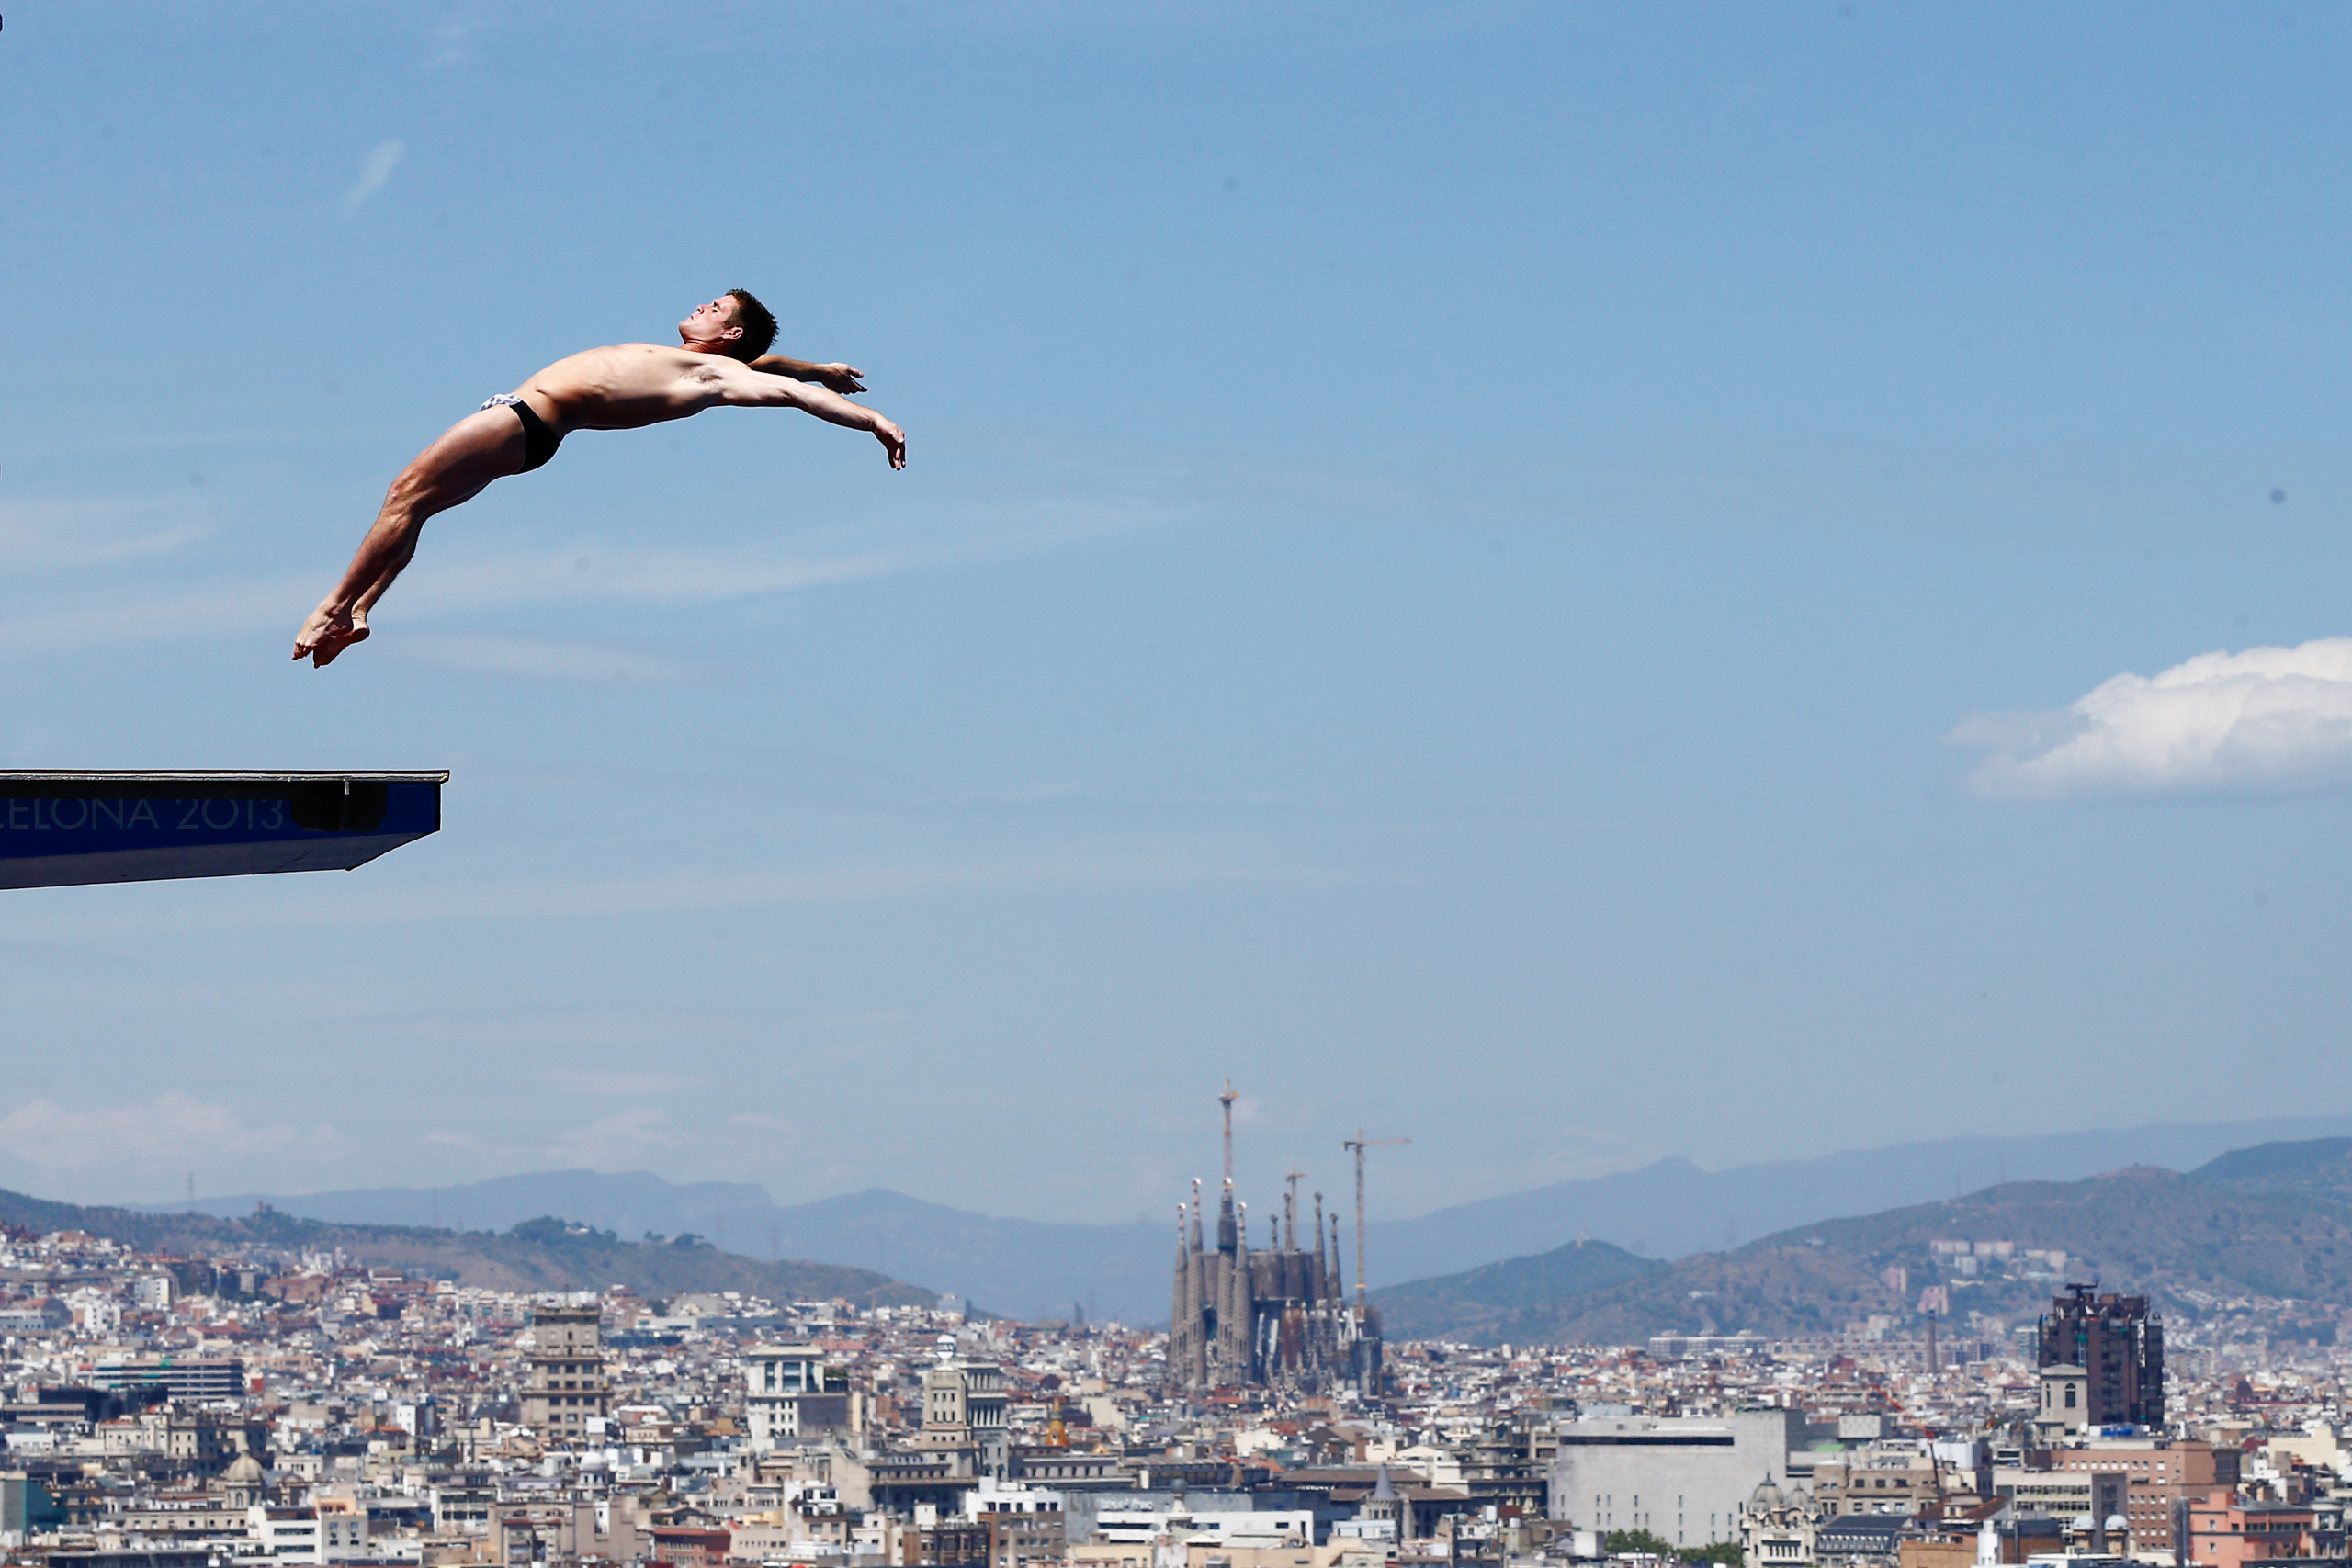 <strong>David Boudia, Diving, USA</strong>The defending Olympic champ in the 10-m platform almost quit diving but credits his wife and daughter with re-energizing his interest in the sport.